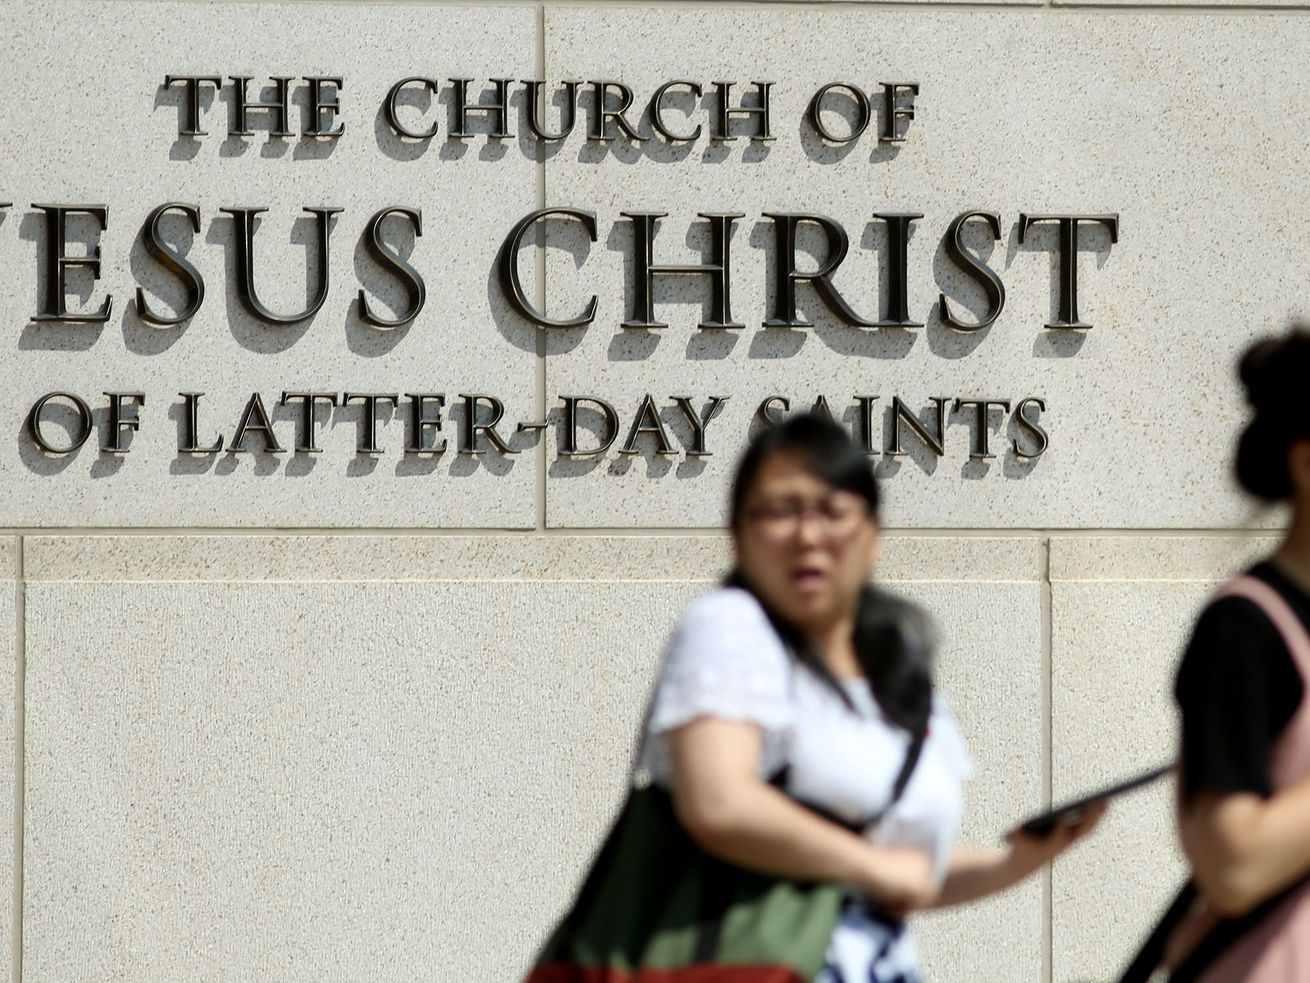 Study: News articles that fail to use correct name of church more likely to include negative content